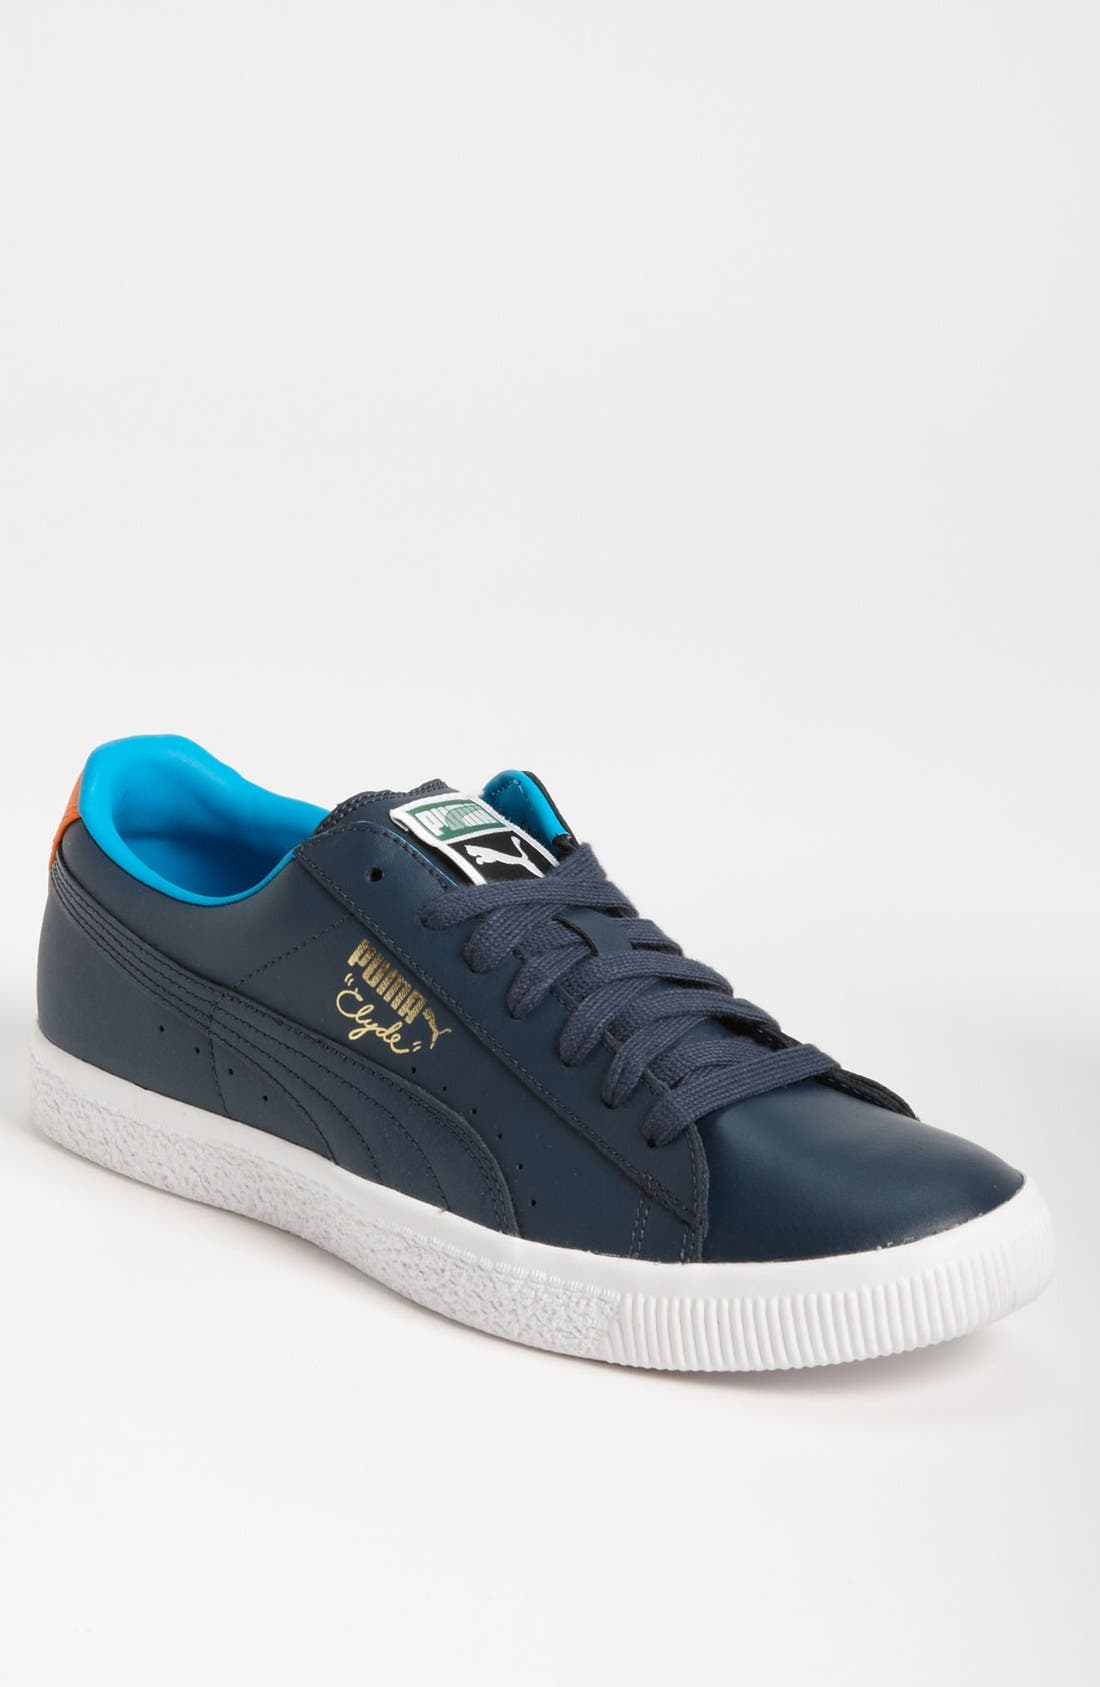 Alternate Image 1 Selected - PUMA 'Clyde' Sneaker (Men)